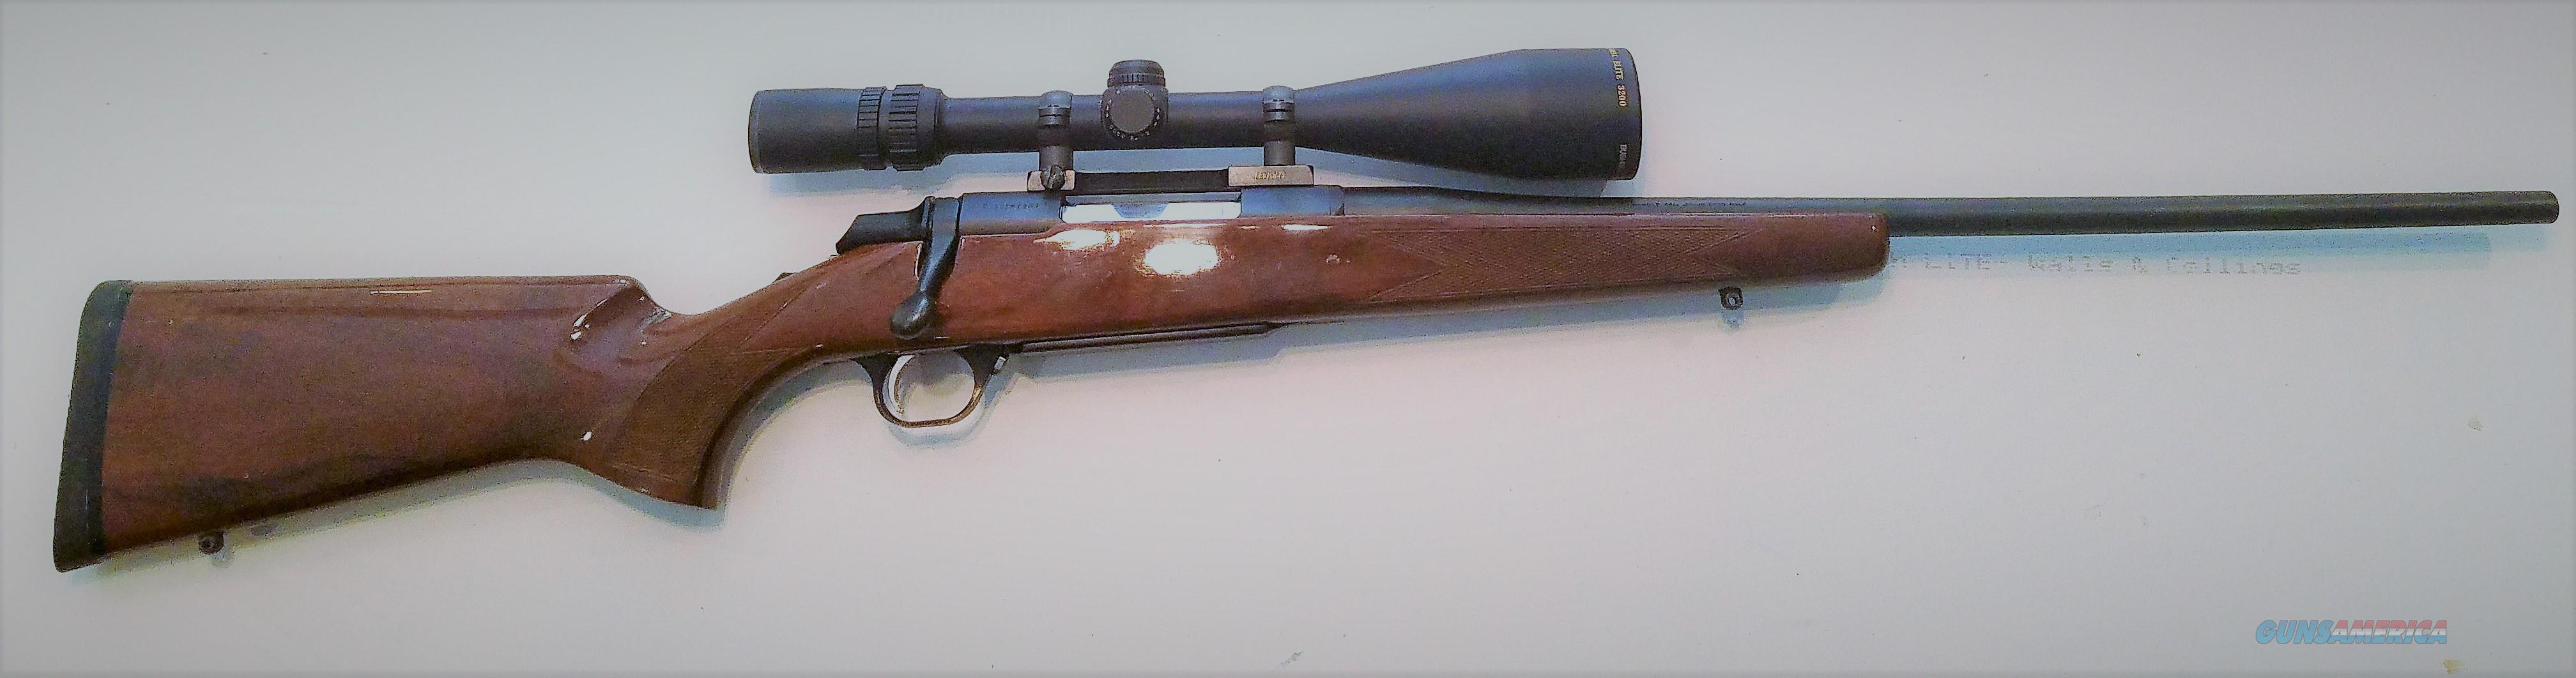 Browning A-Bolt  Guns > Rifles > Browning Rifles > Bolt Action > Hunting > Blue